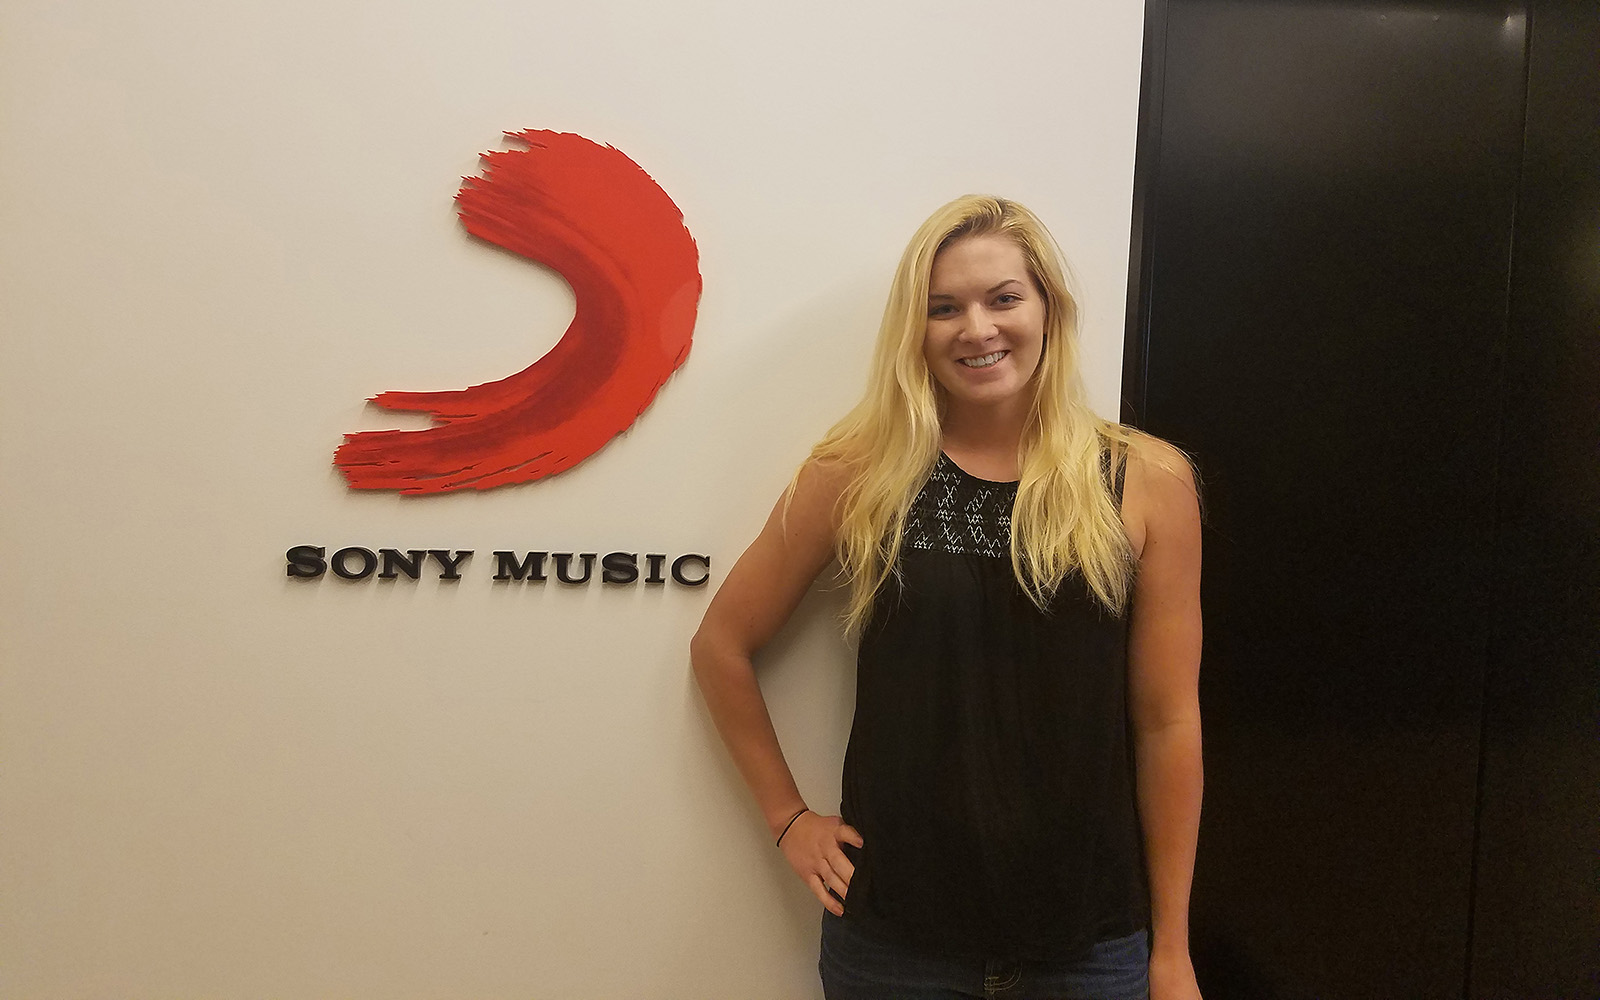 Maggie Quackenbush, during her first week at Sony Music. (Maggie Quackenbush)